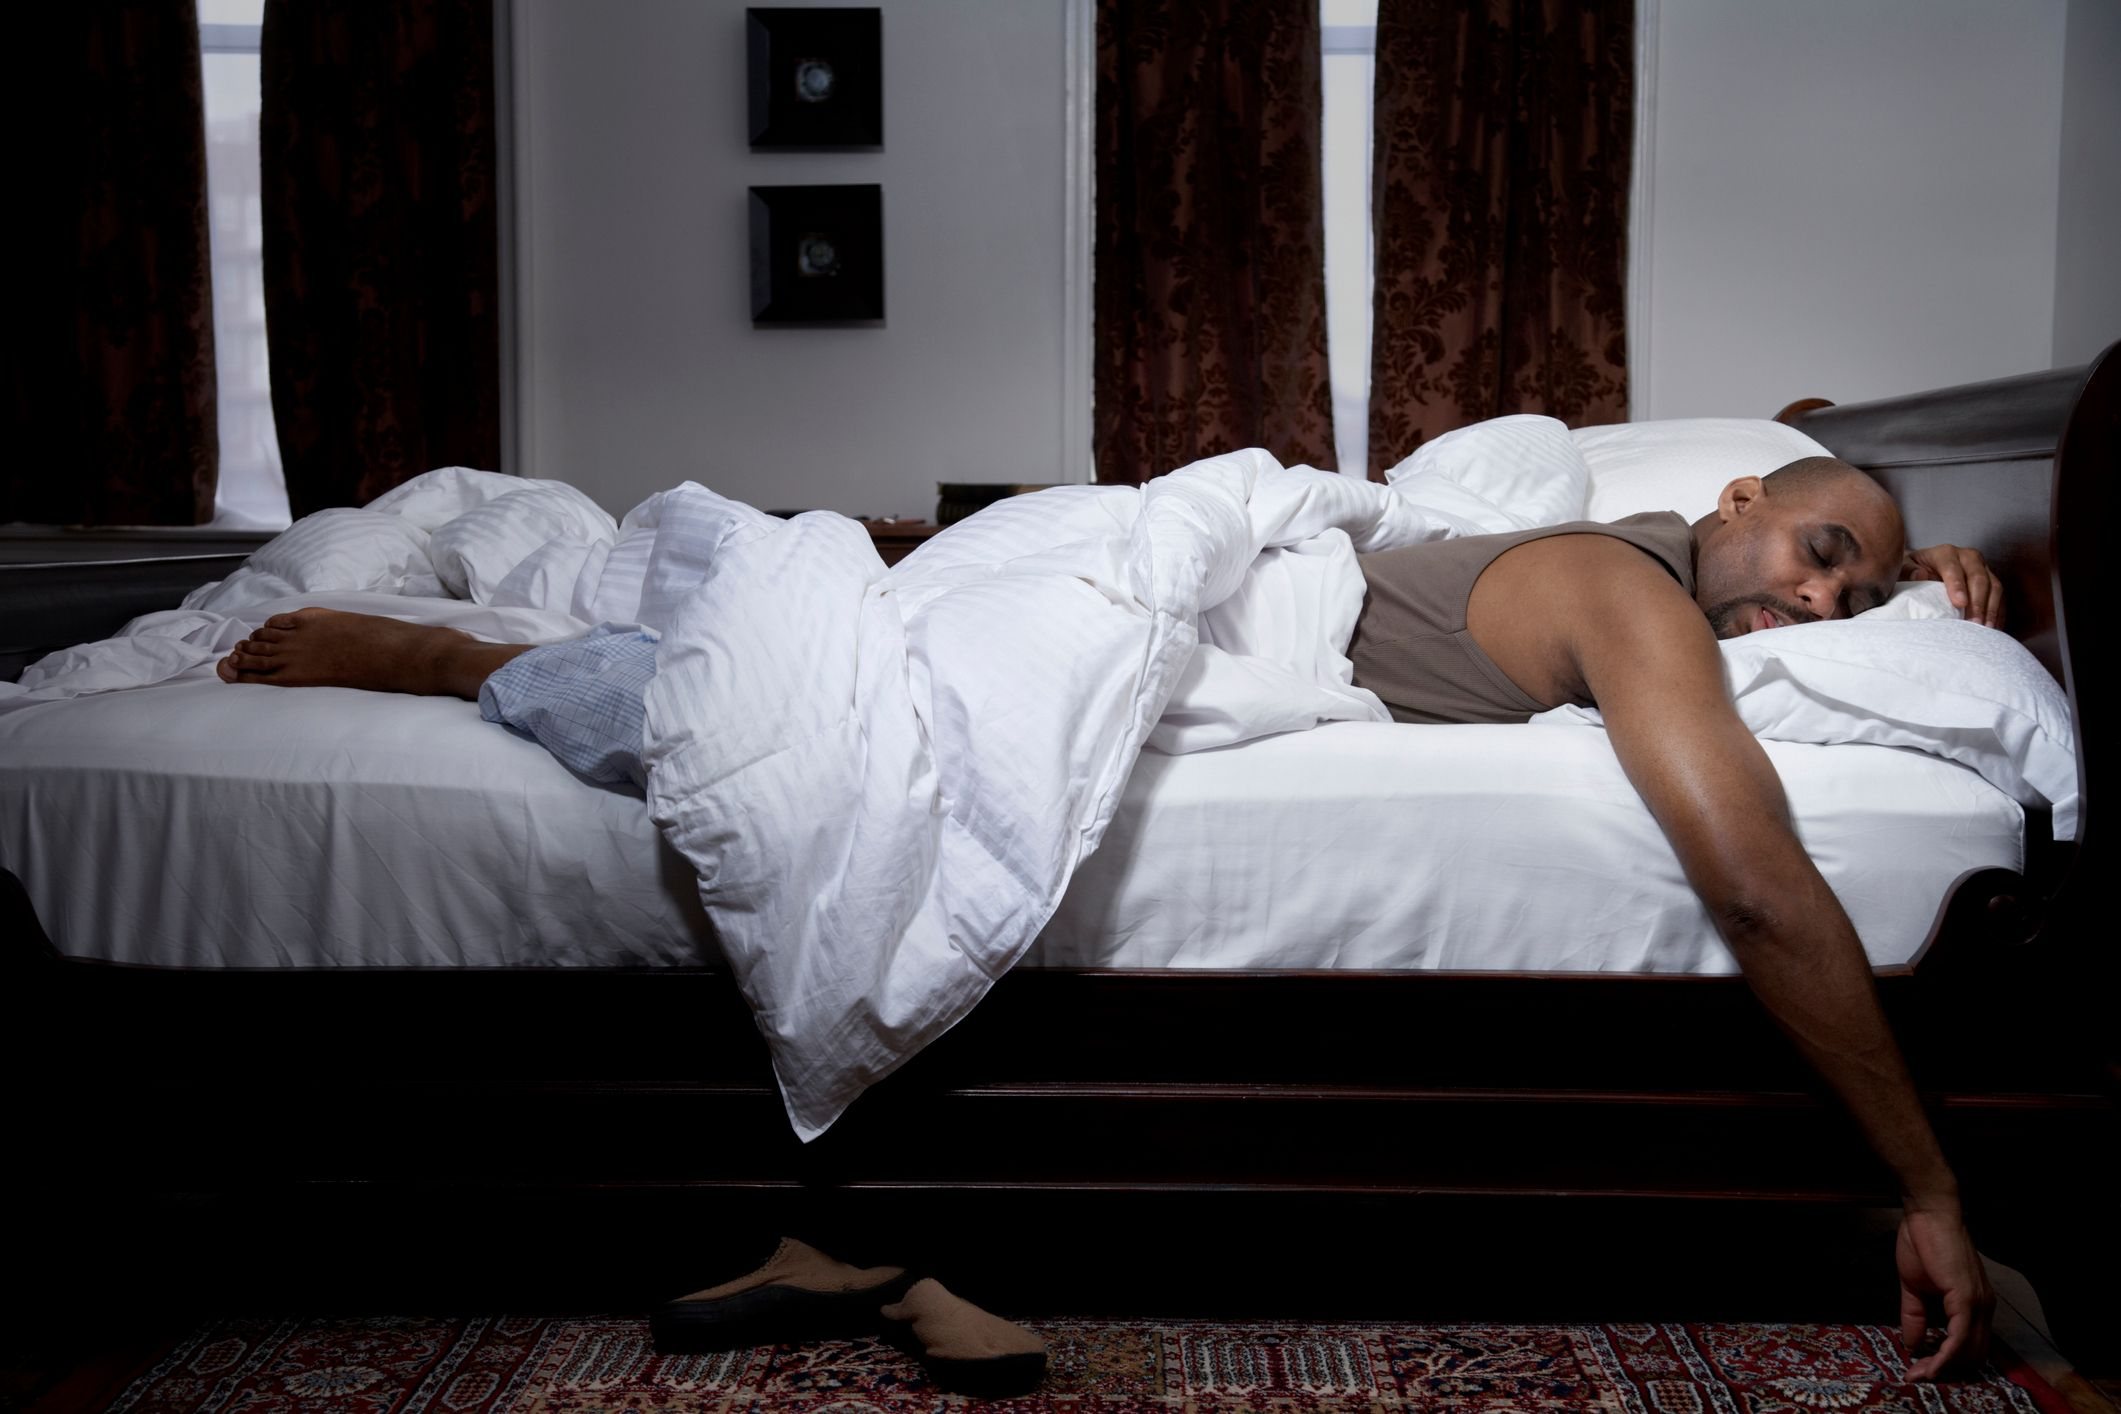 A man sleeping comfortably on a bed. | Source: Shutterstock